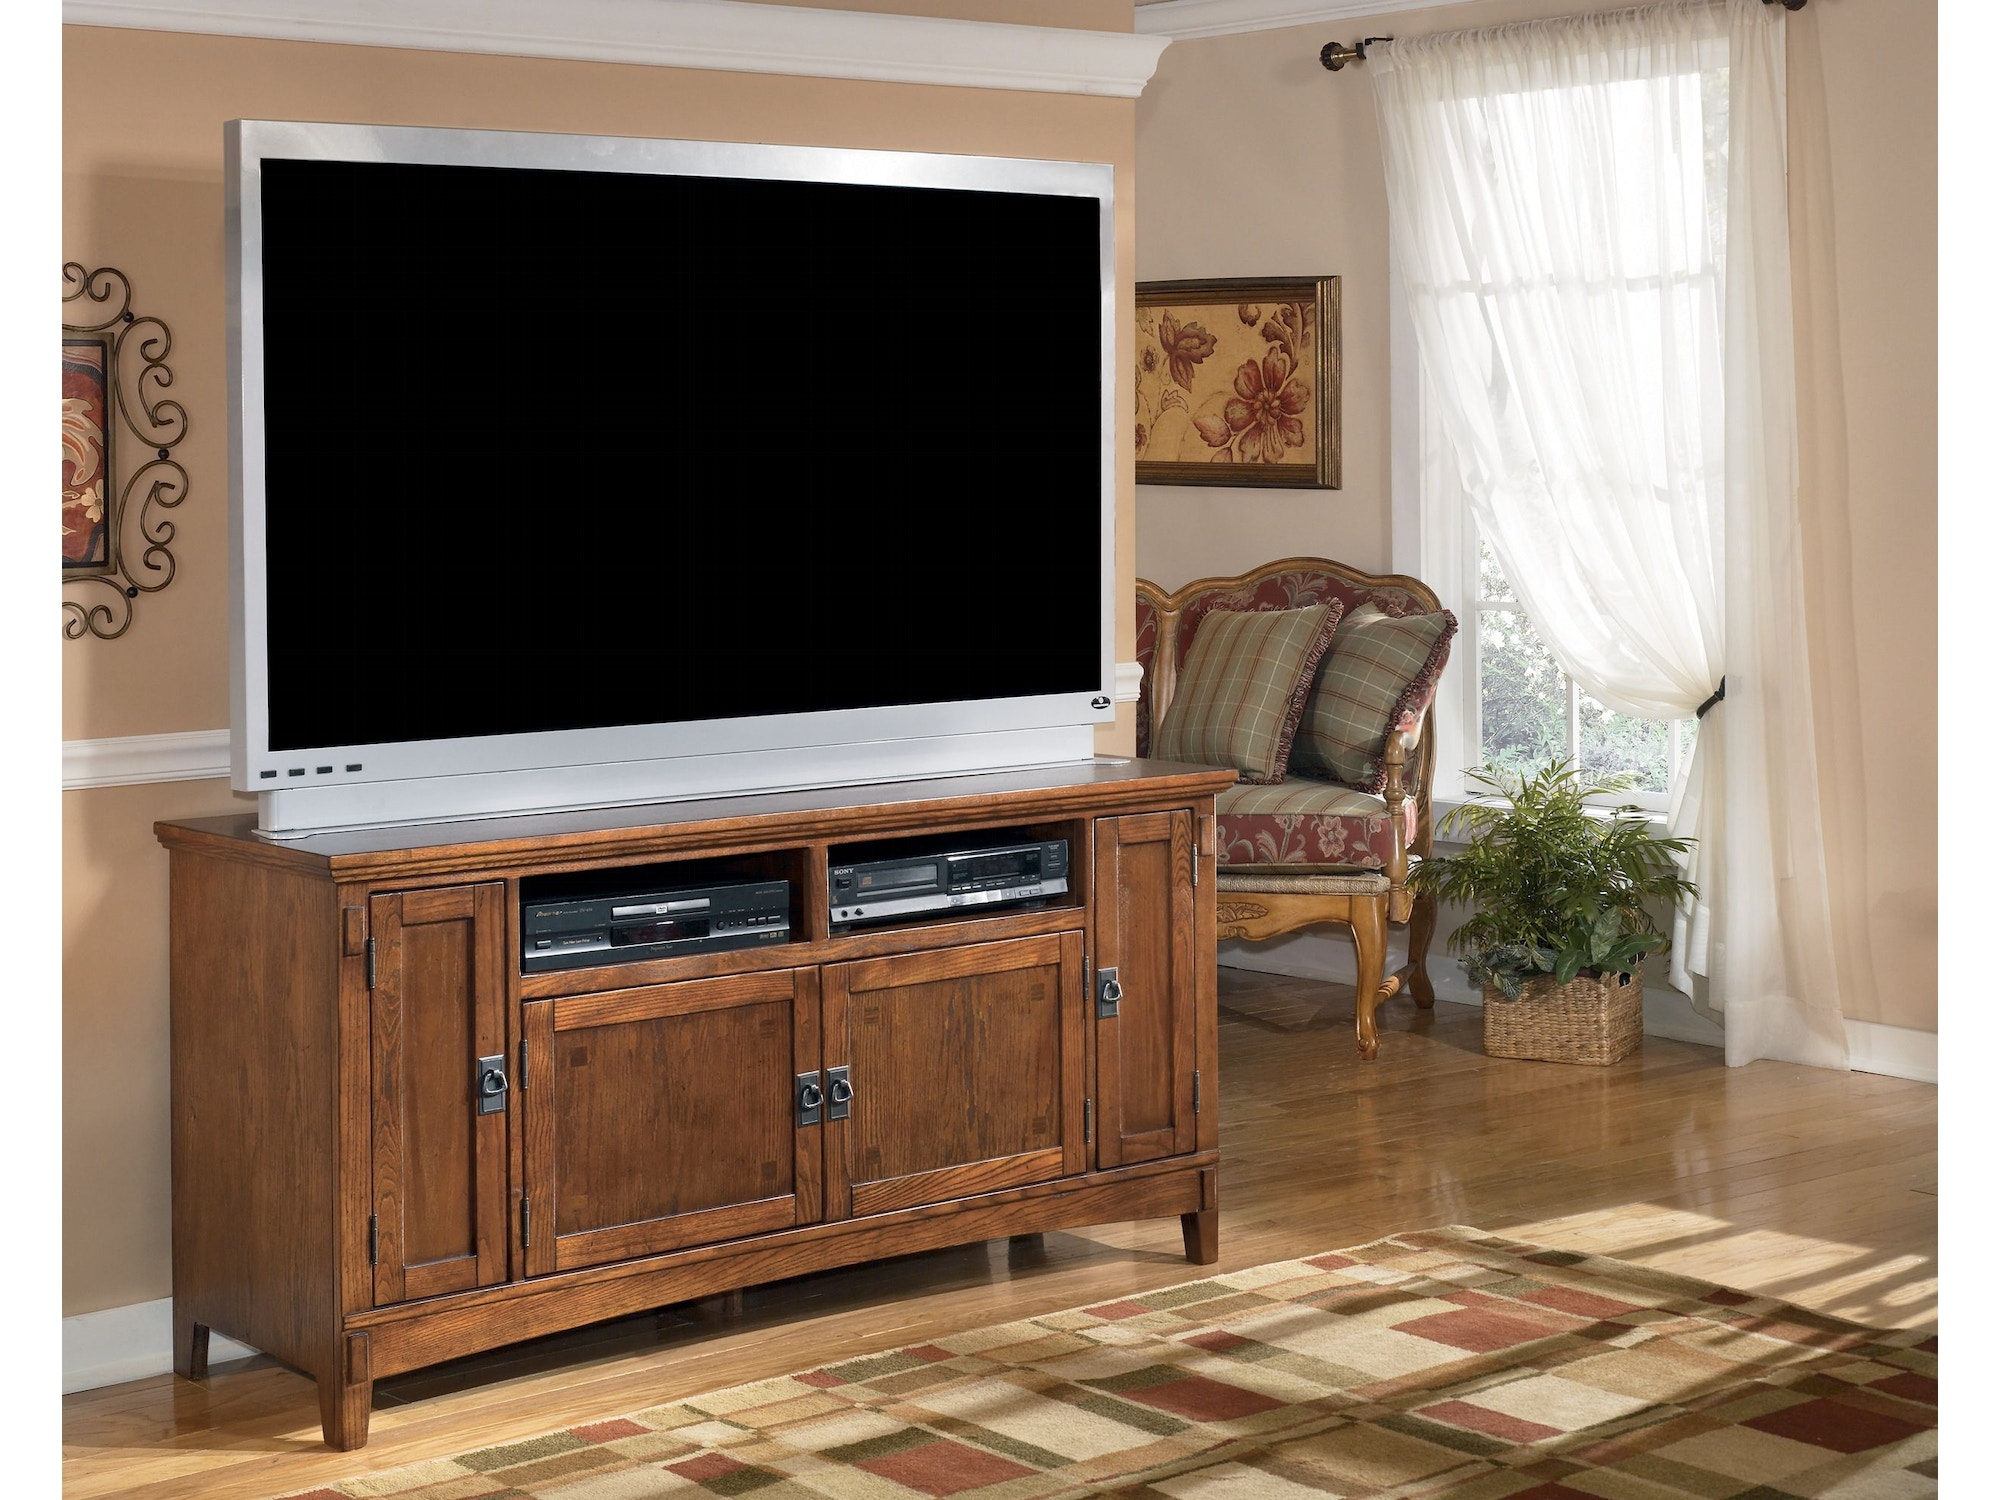 Cross Island TV Stand - Large 830133